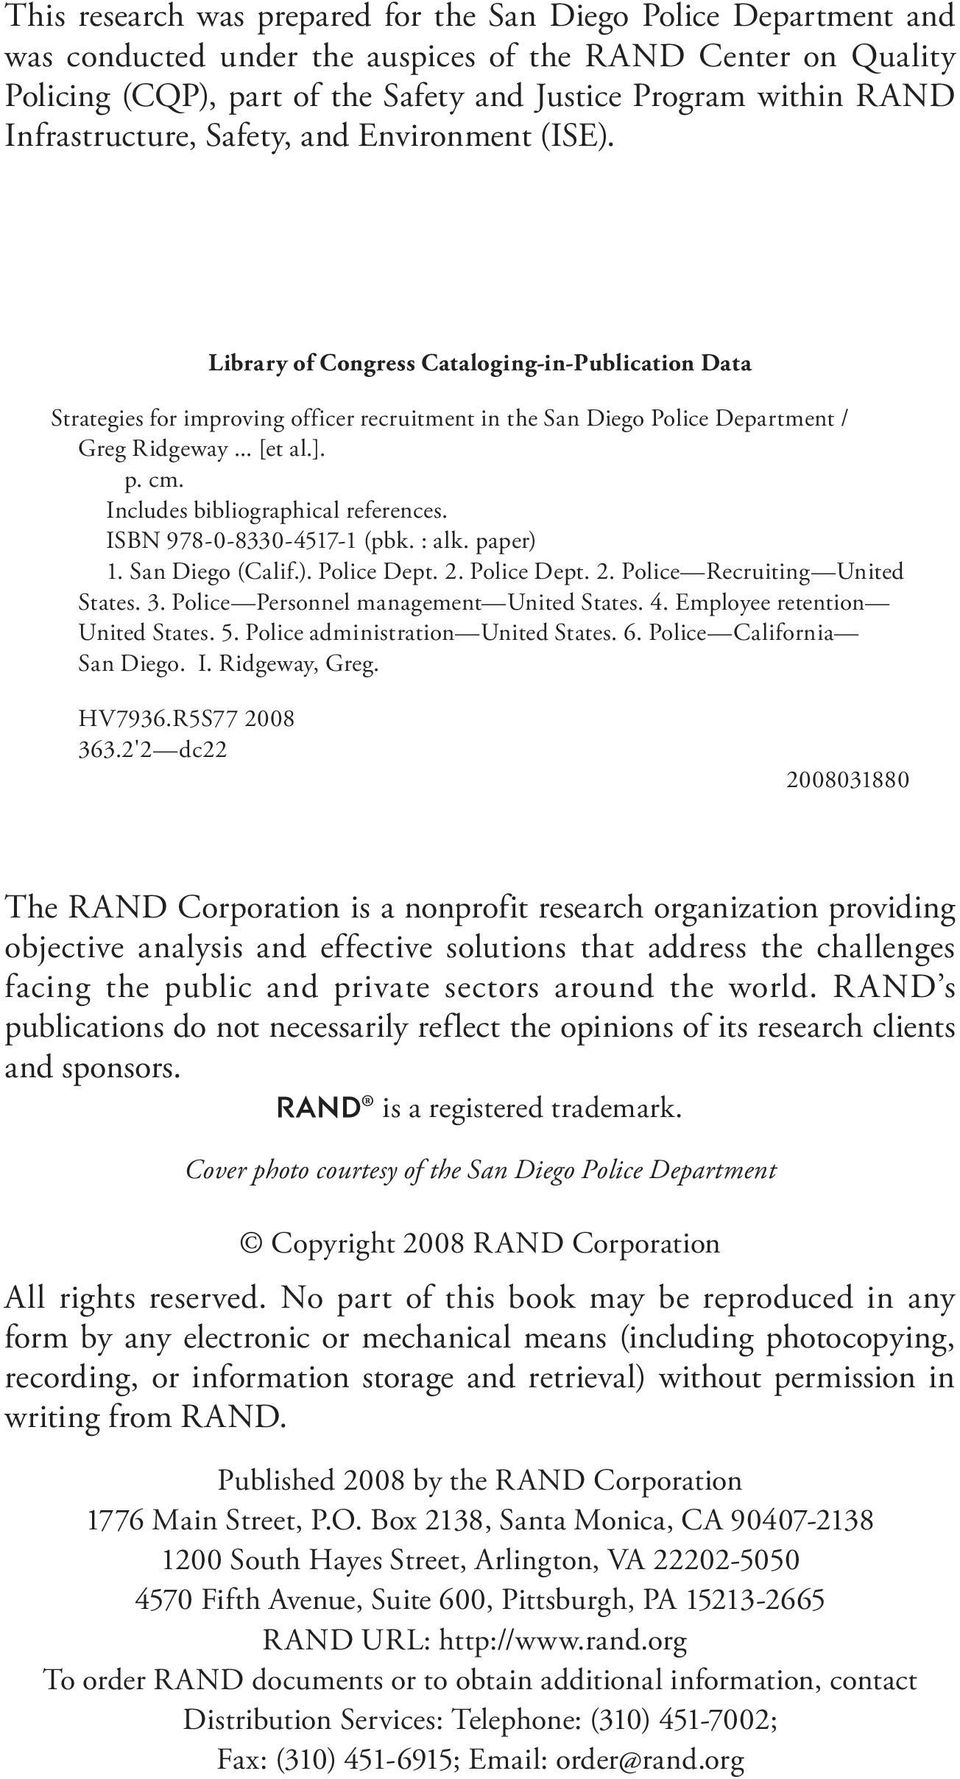 .. [et al.]. p. cm. Includes bibliographical references. ISBN 978-0-8330-4517-1 (pbk. : alk. paper) 1. San Diego (Calif.). Police Dept. 2. Police Dept. 2. Police Recruiting United States. 3.